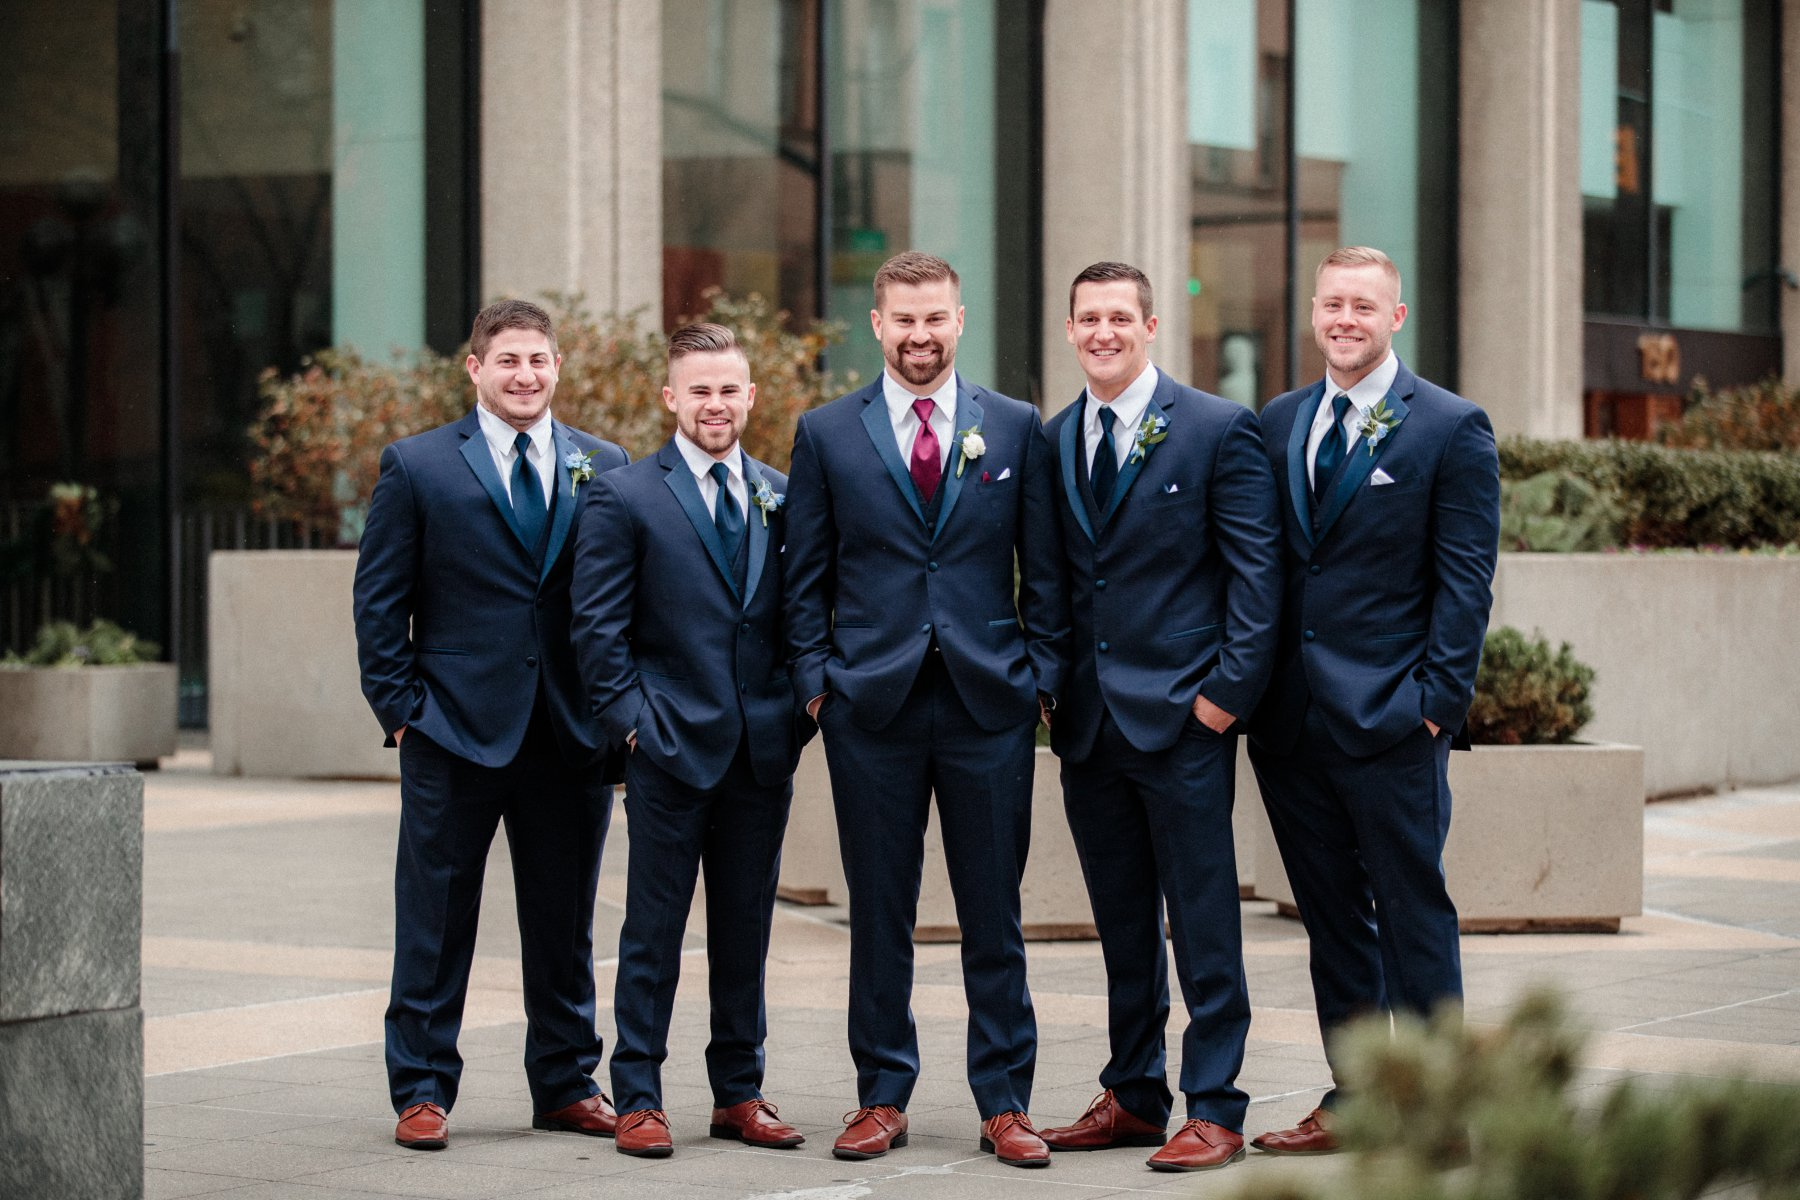 Groomsmen Poses - Professional Photographer Ohio